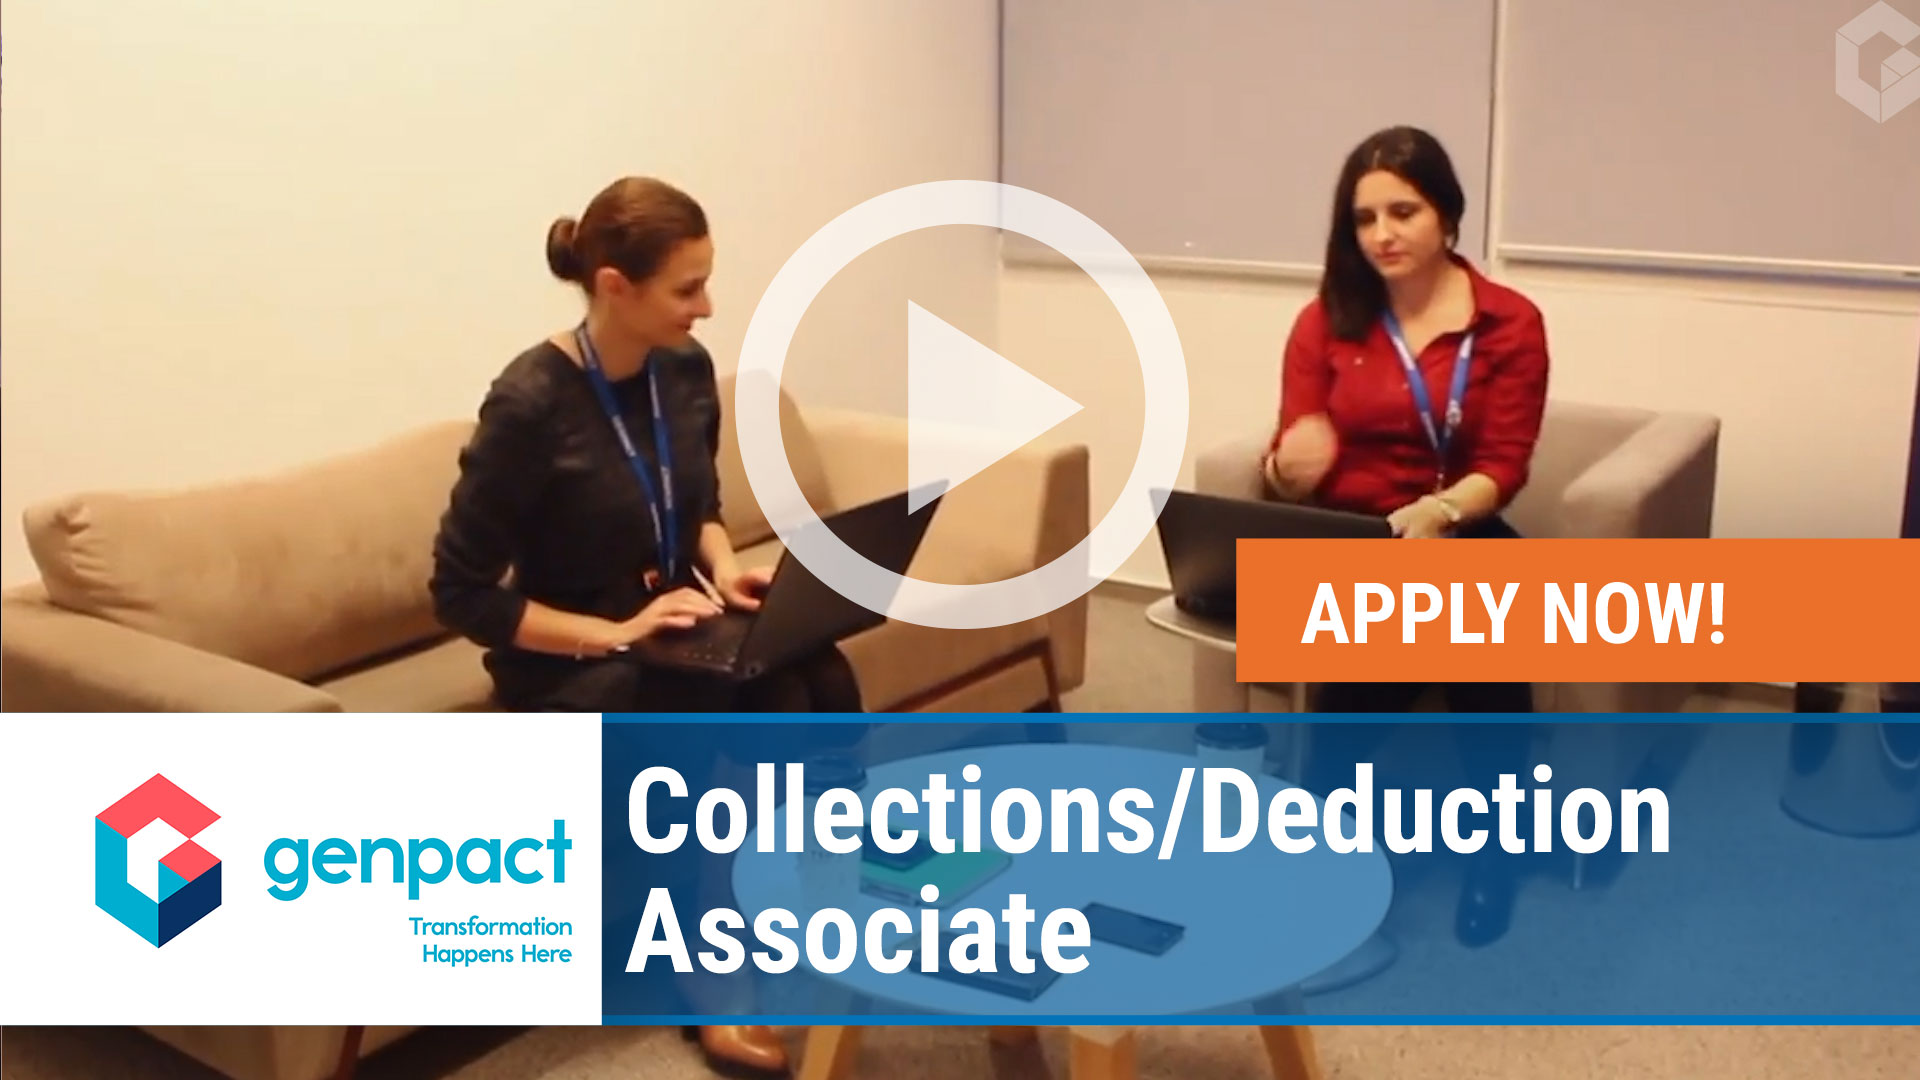 Watch our careers video for available job opening Collections - Deduction Associate in Wilkes-Barre, Pennsylvania